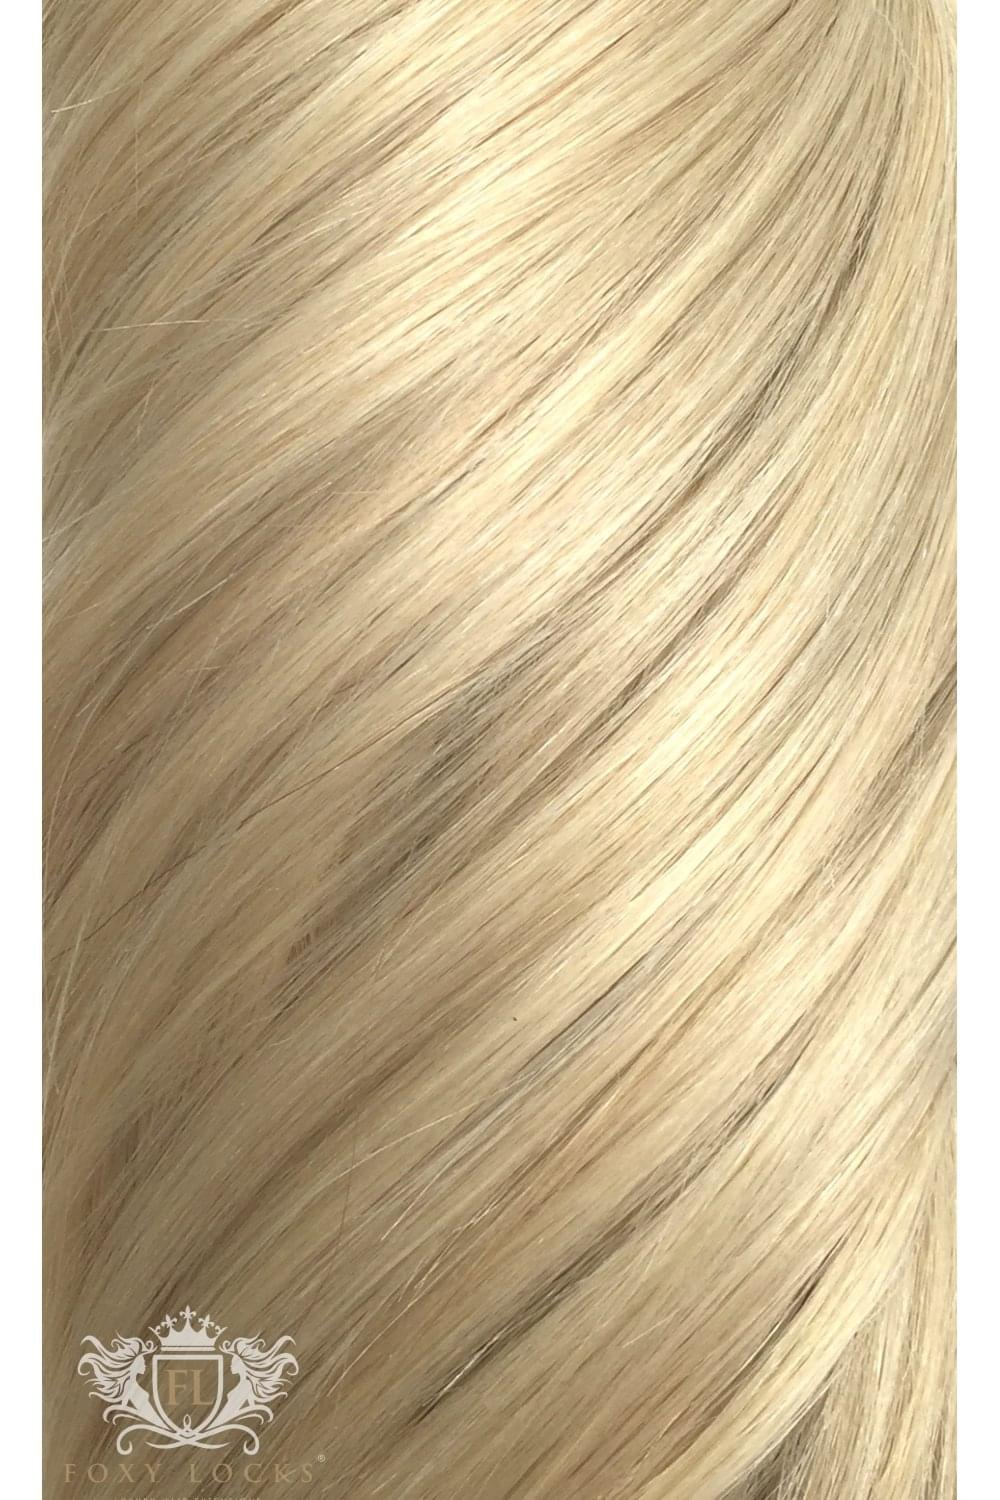 Hollywood Superior Seamless 22 Clip In Human Hair Extensions 230g